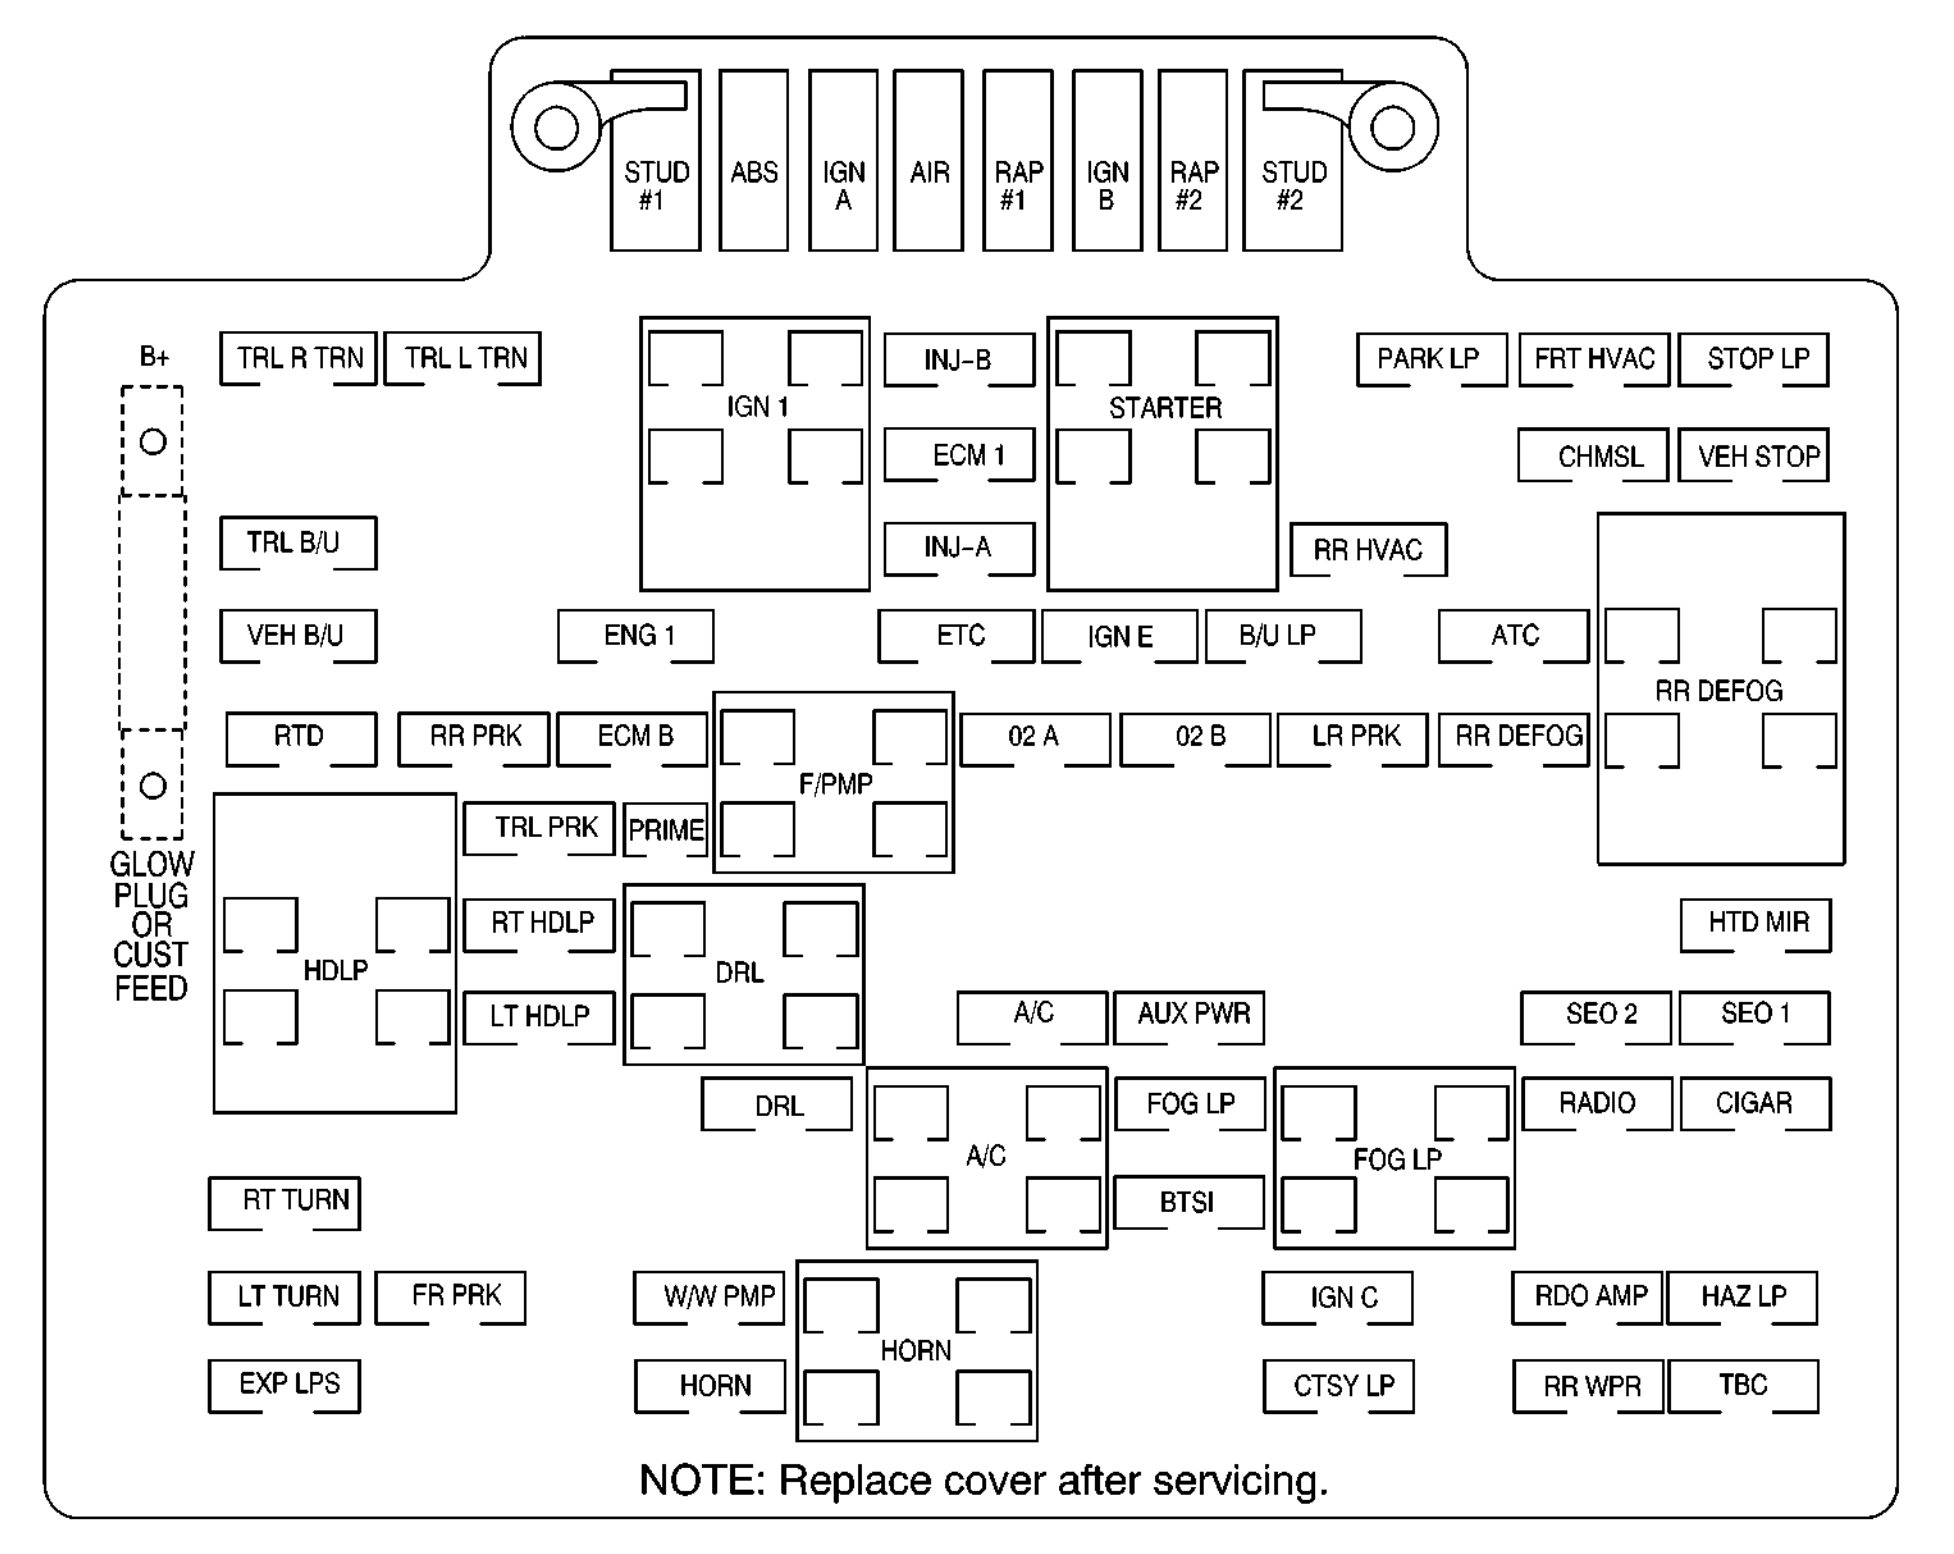 Chevy Impala Fuse Box Diagram